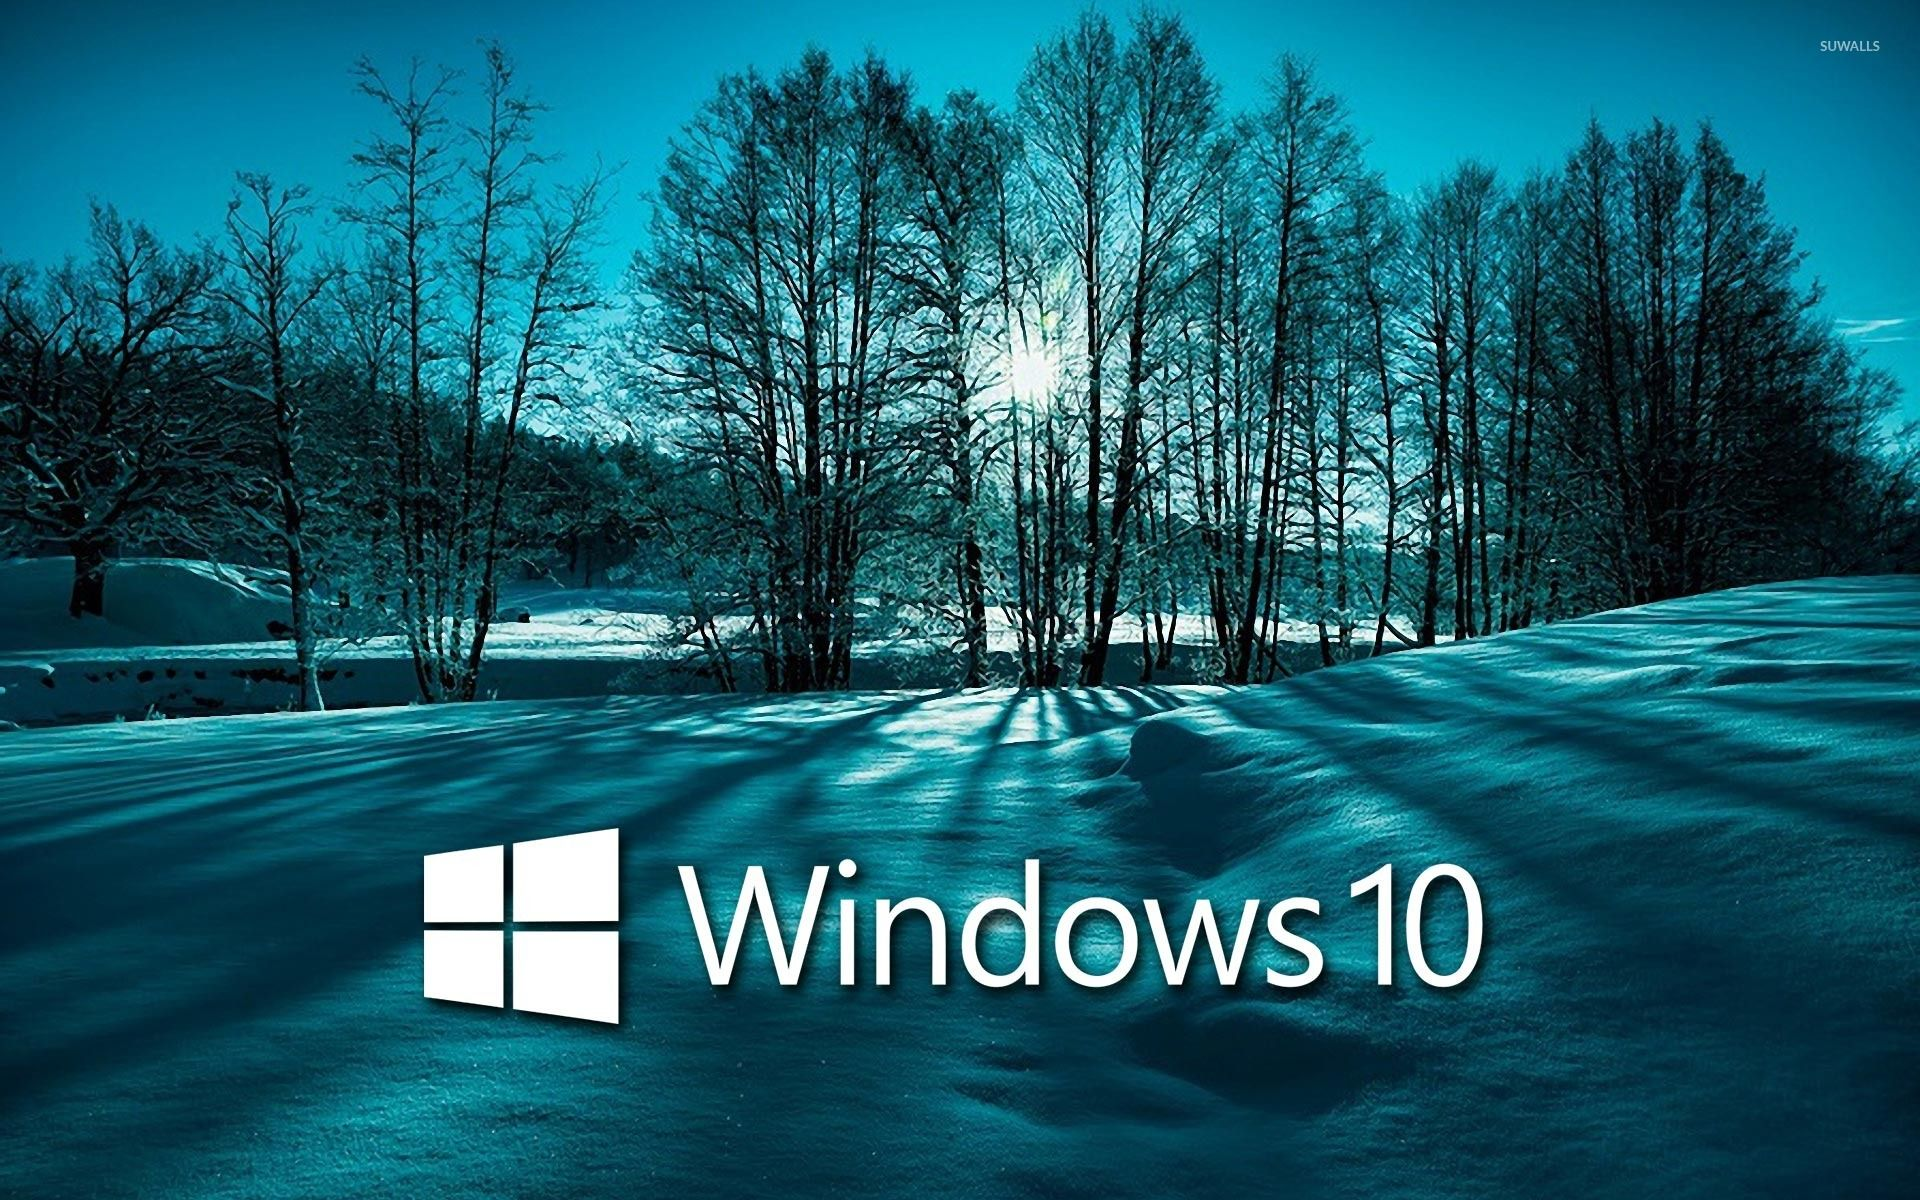 windows 10 wallpaper glass Beautiful nature pictures